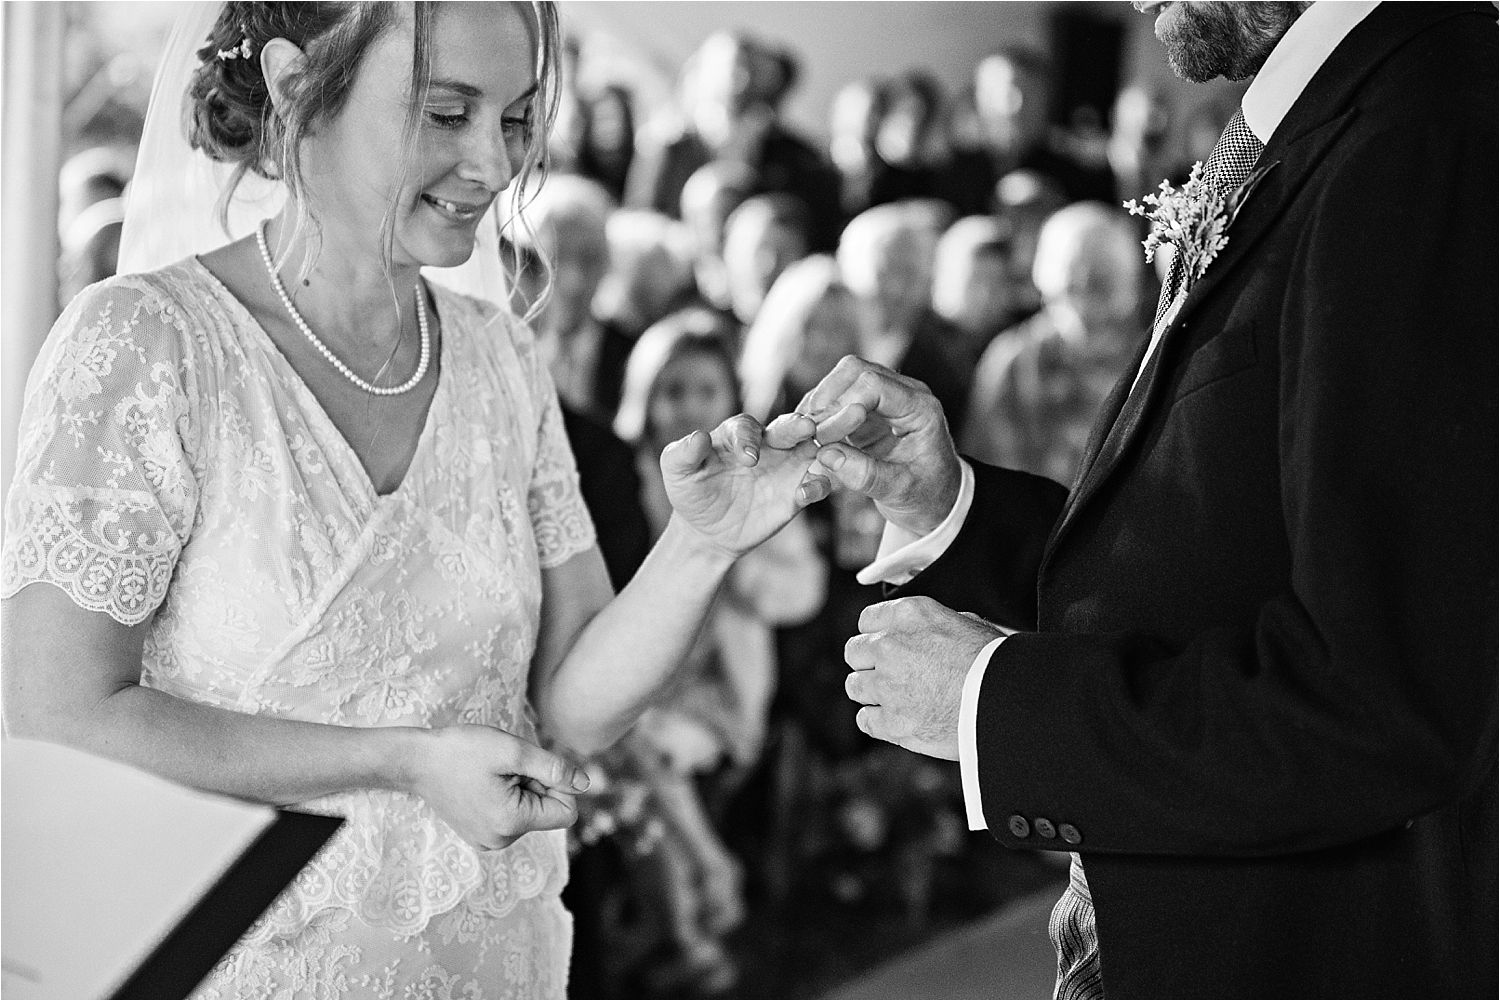 Exchnage of rings at Manchester tipi wedding ceremony. Dress by Elizabeth Avey of London